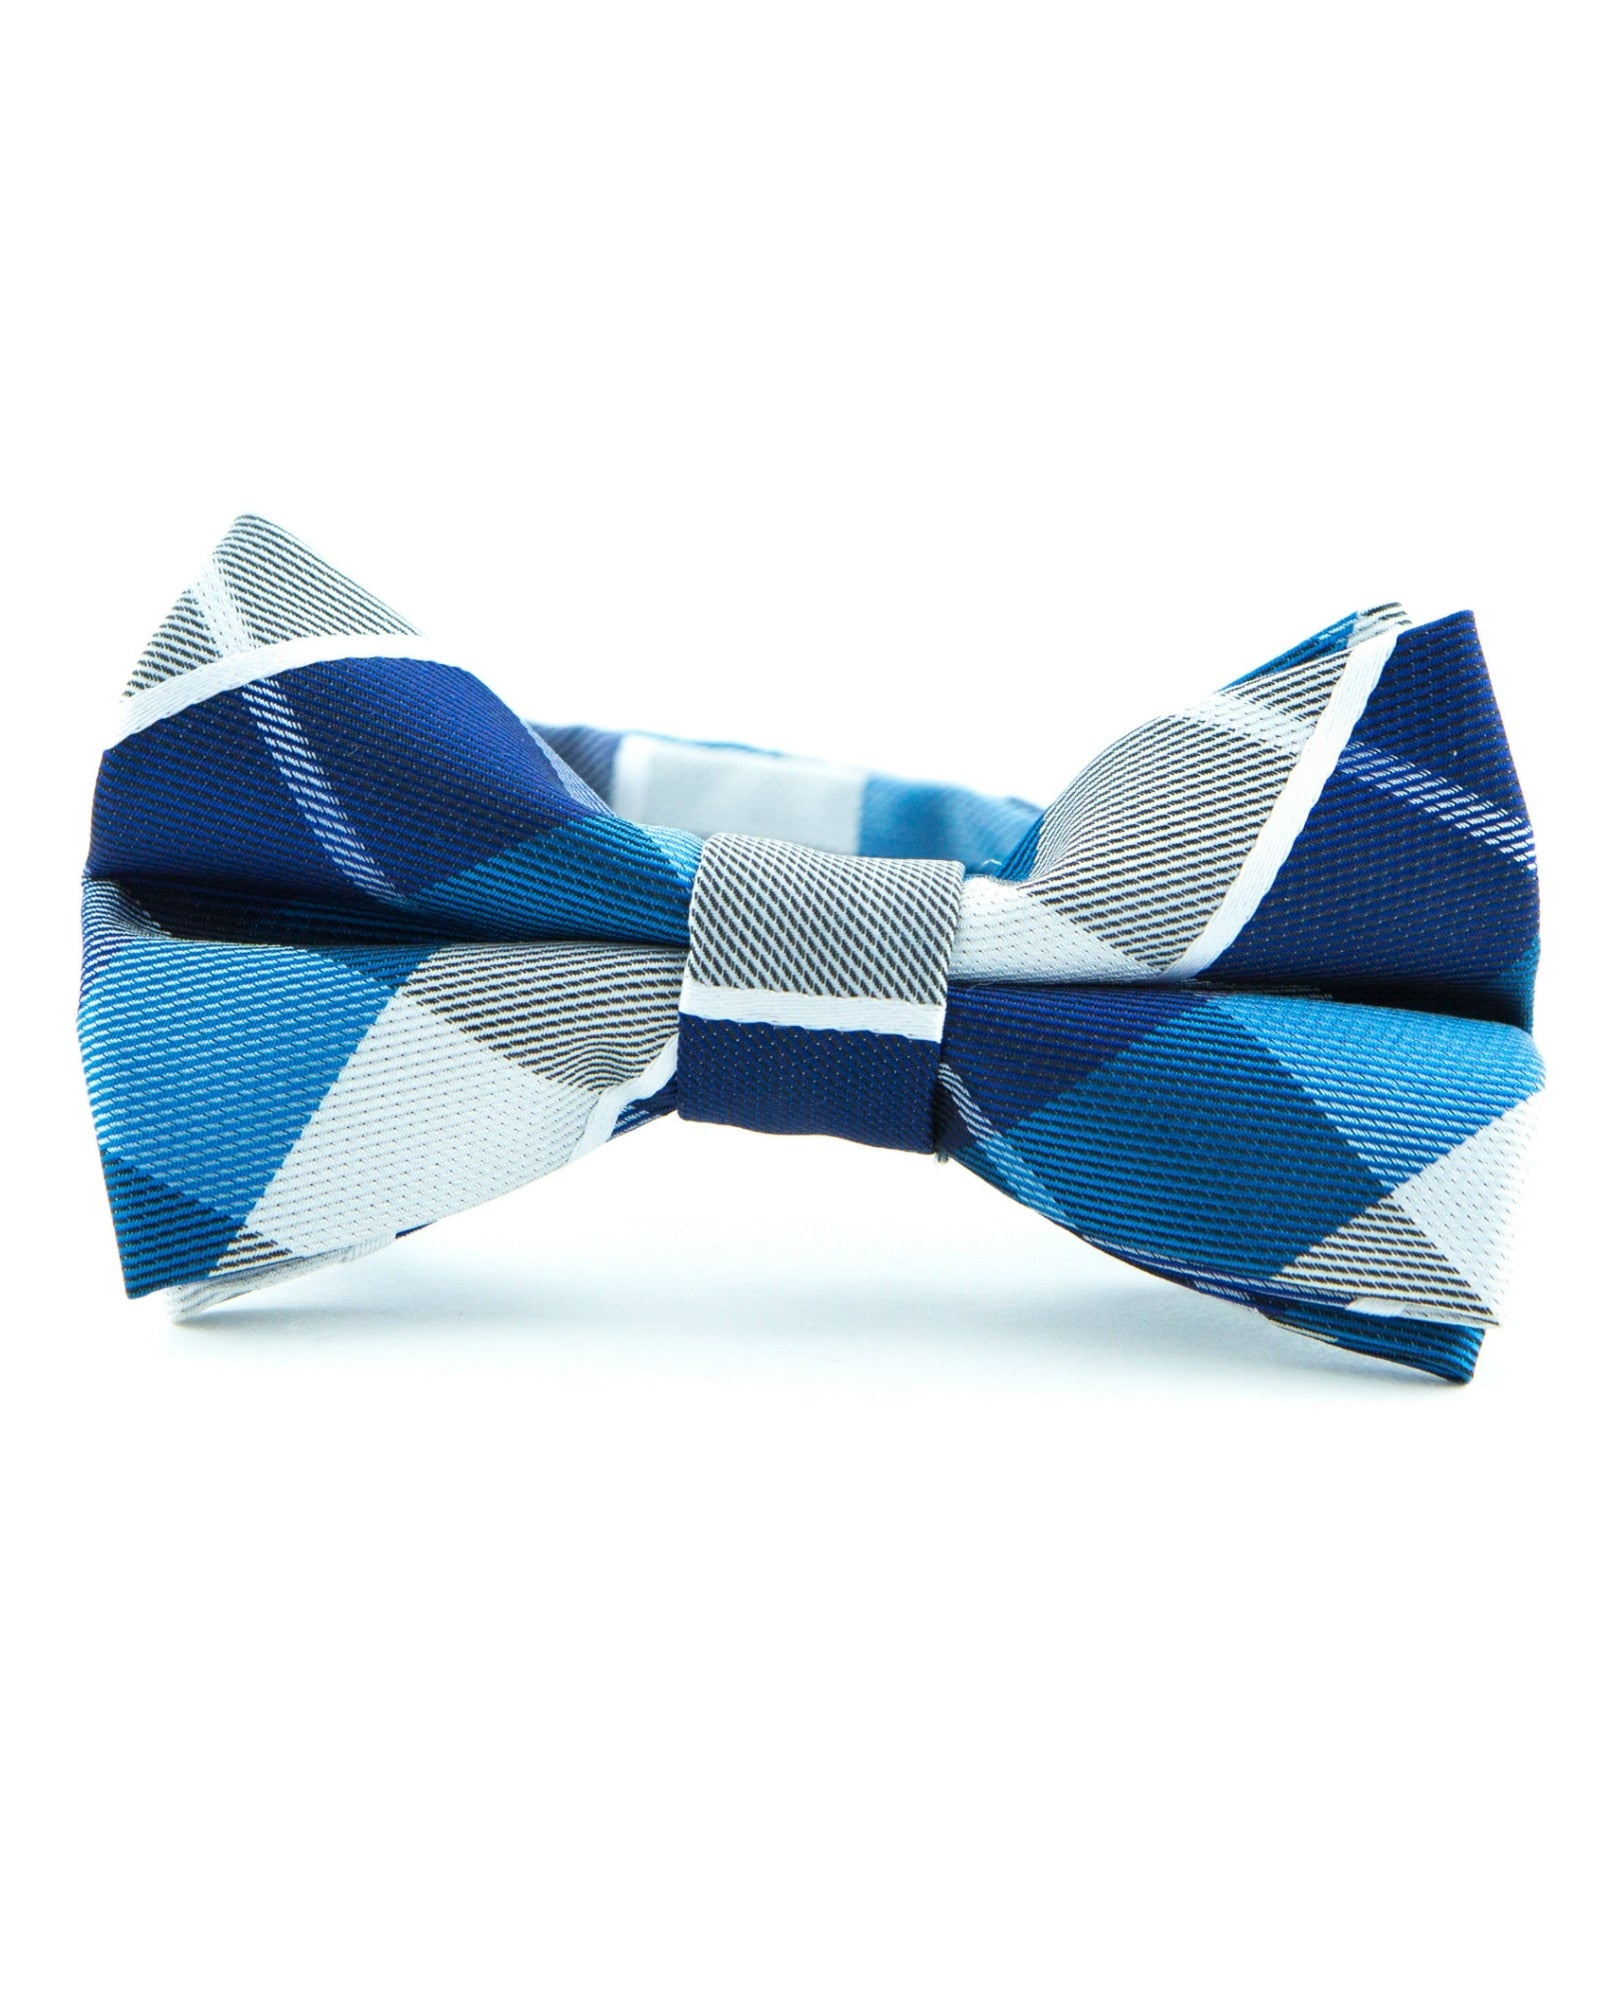 deep-teal-and-ivory-check-bow.jpg